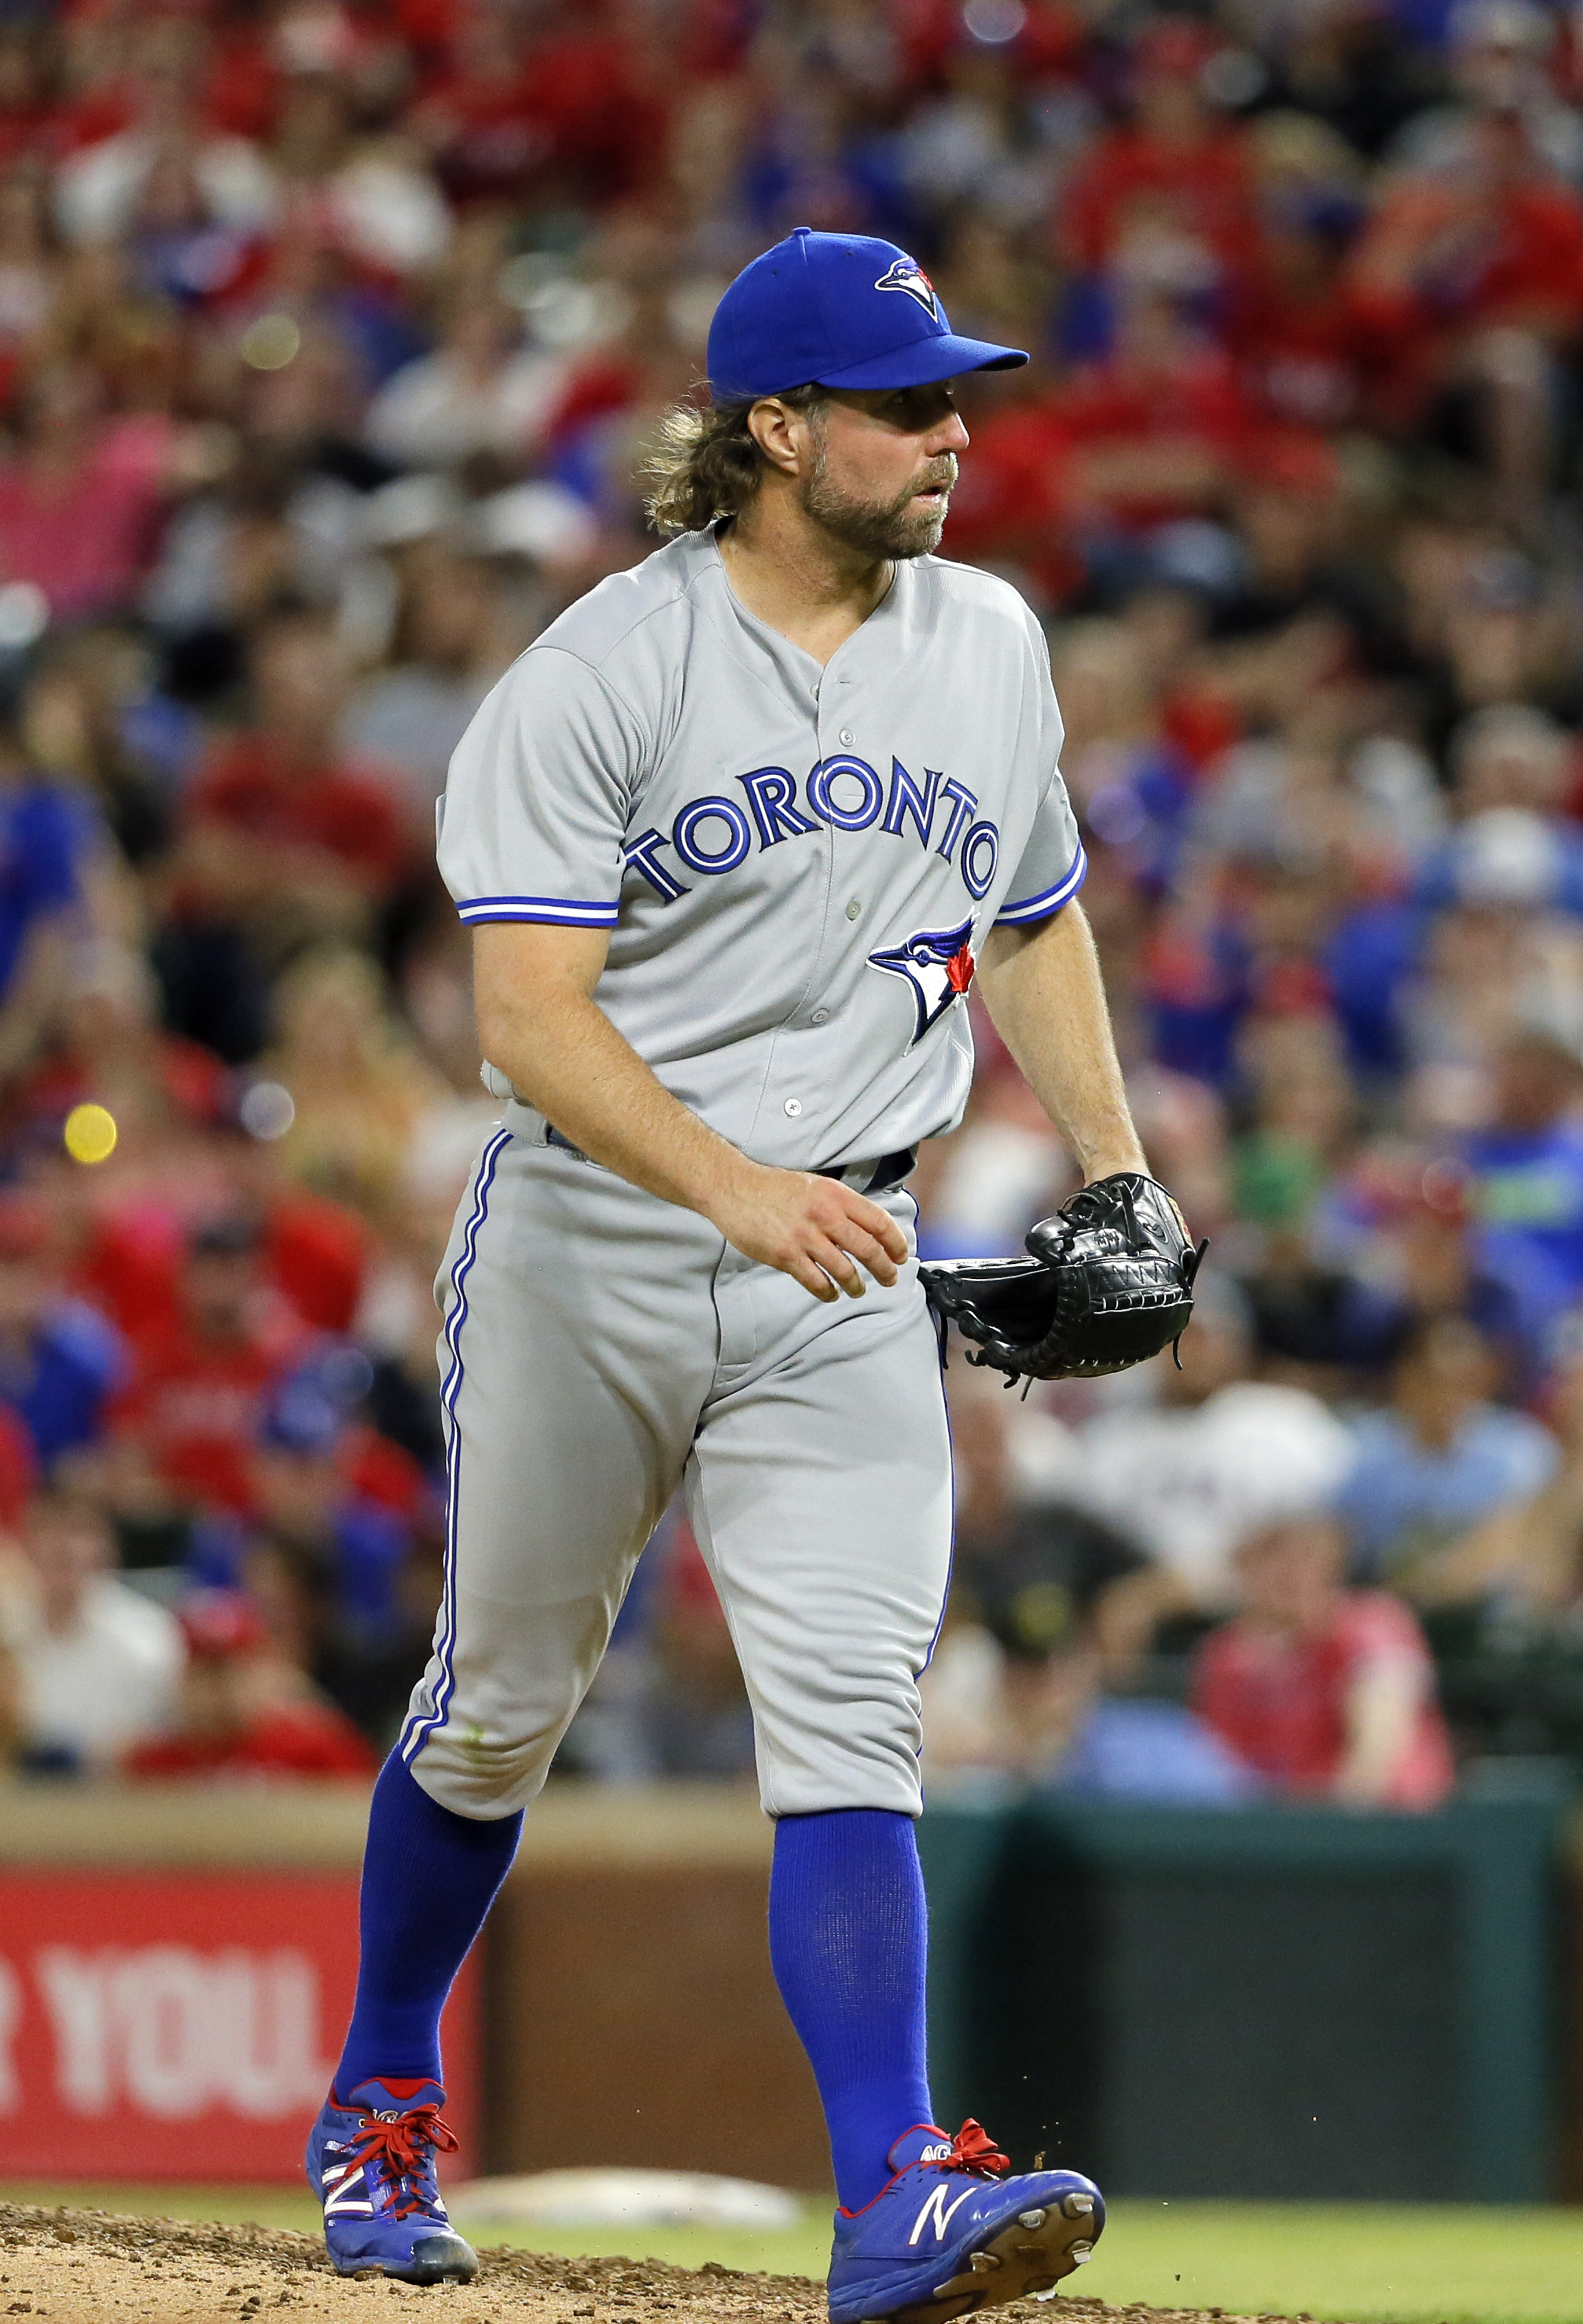 Toronto Blue Jays starting pitcher R.A. Dickey walks off the mound after getting the final out against the Texas Rangers in the seventh inning of a baseball game Friday, May 13, 2016, in Arlington, Texas. (AP Photo/Tony Gutierrez)